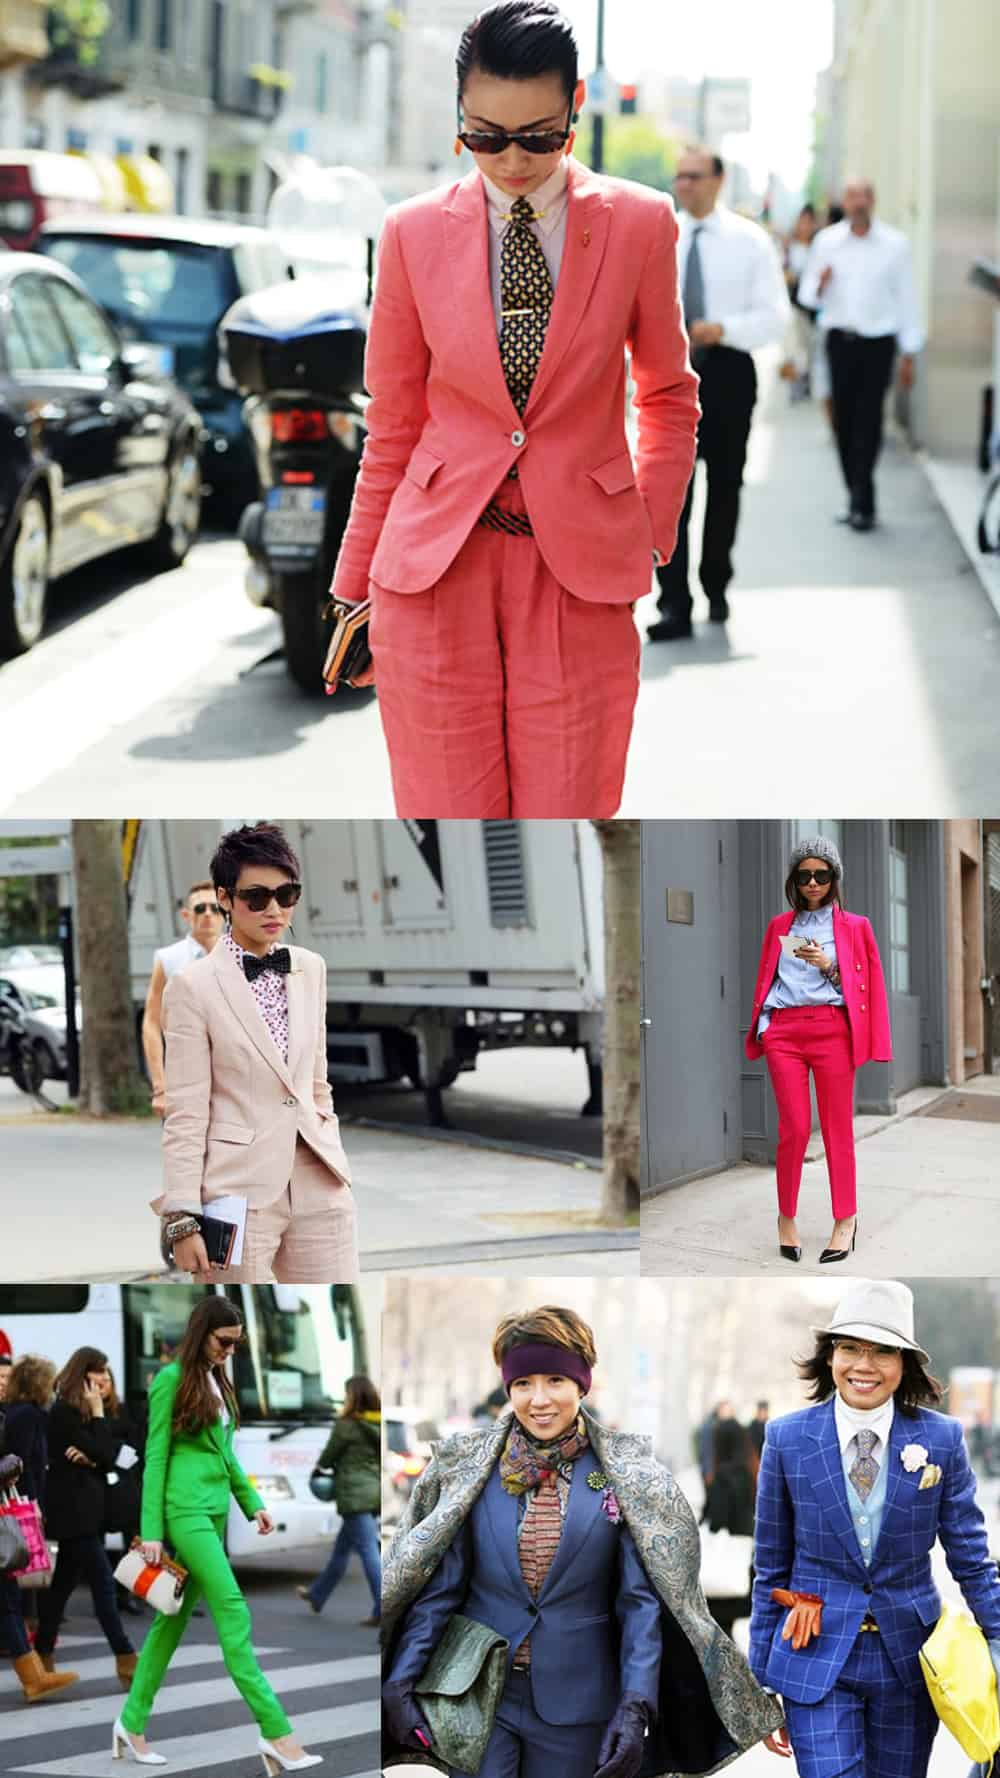 girls-in-pansuits-looks